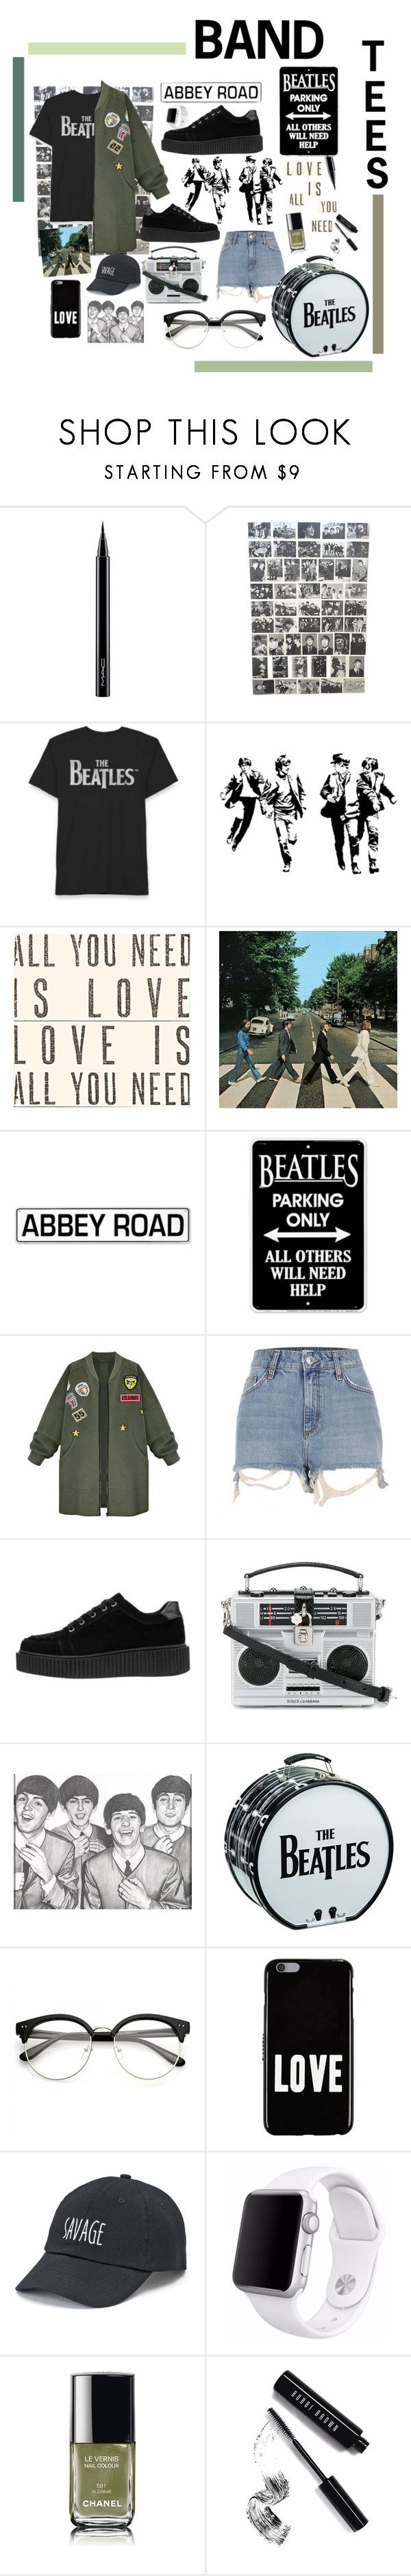 """""""Beatles// Band Tees"""" by keiberweebers ❤ liked on Polyvore featuring MAC Cosmetics, Sugarboo Designs, WithChic, River Island, Dolce&Gabbana, Givenchy, SO, Apple, Chanel and Bobbi Brown Cosmetics"""